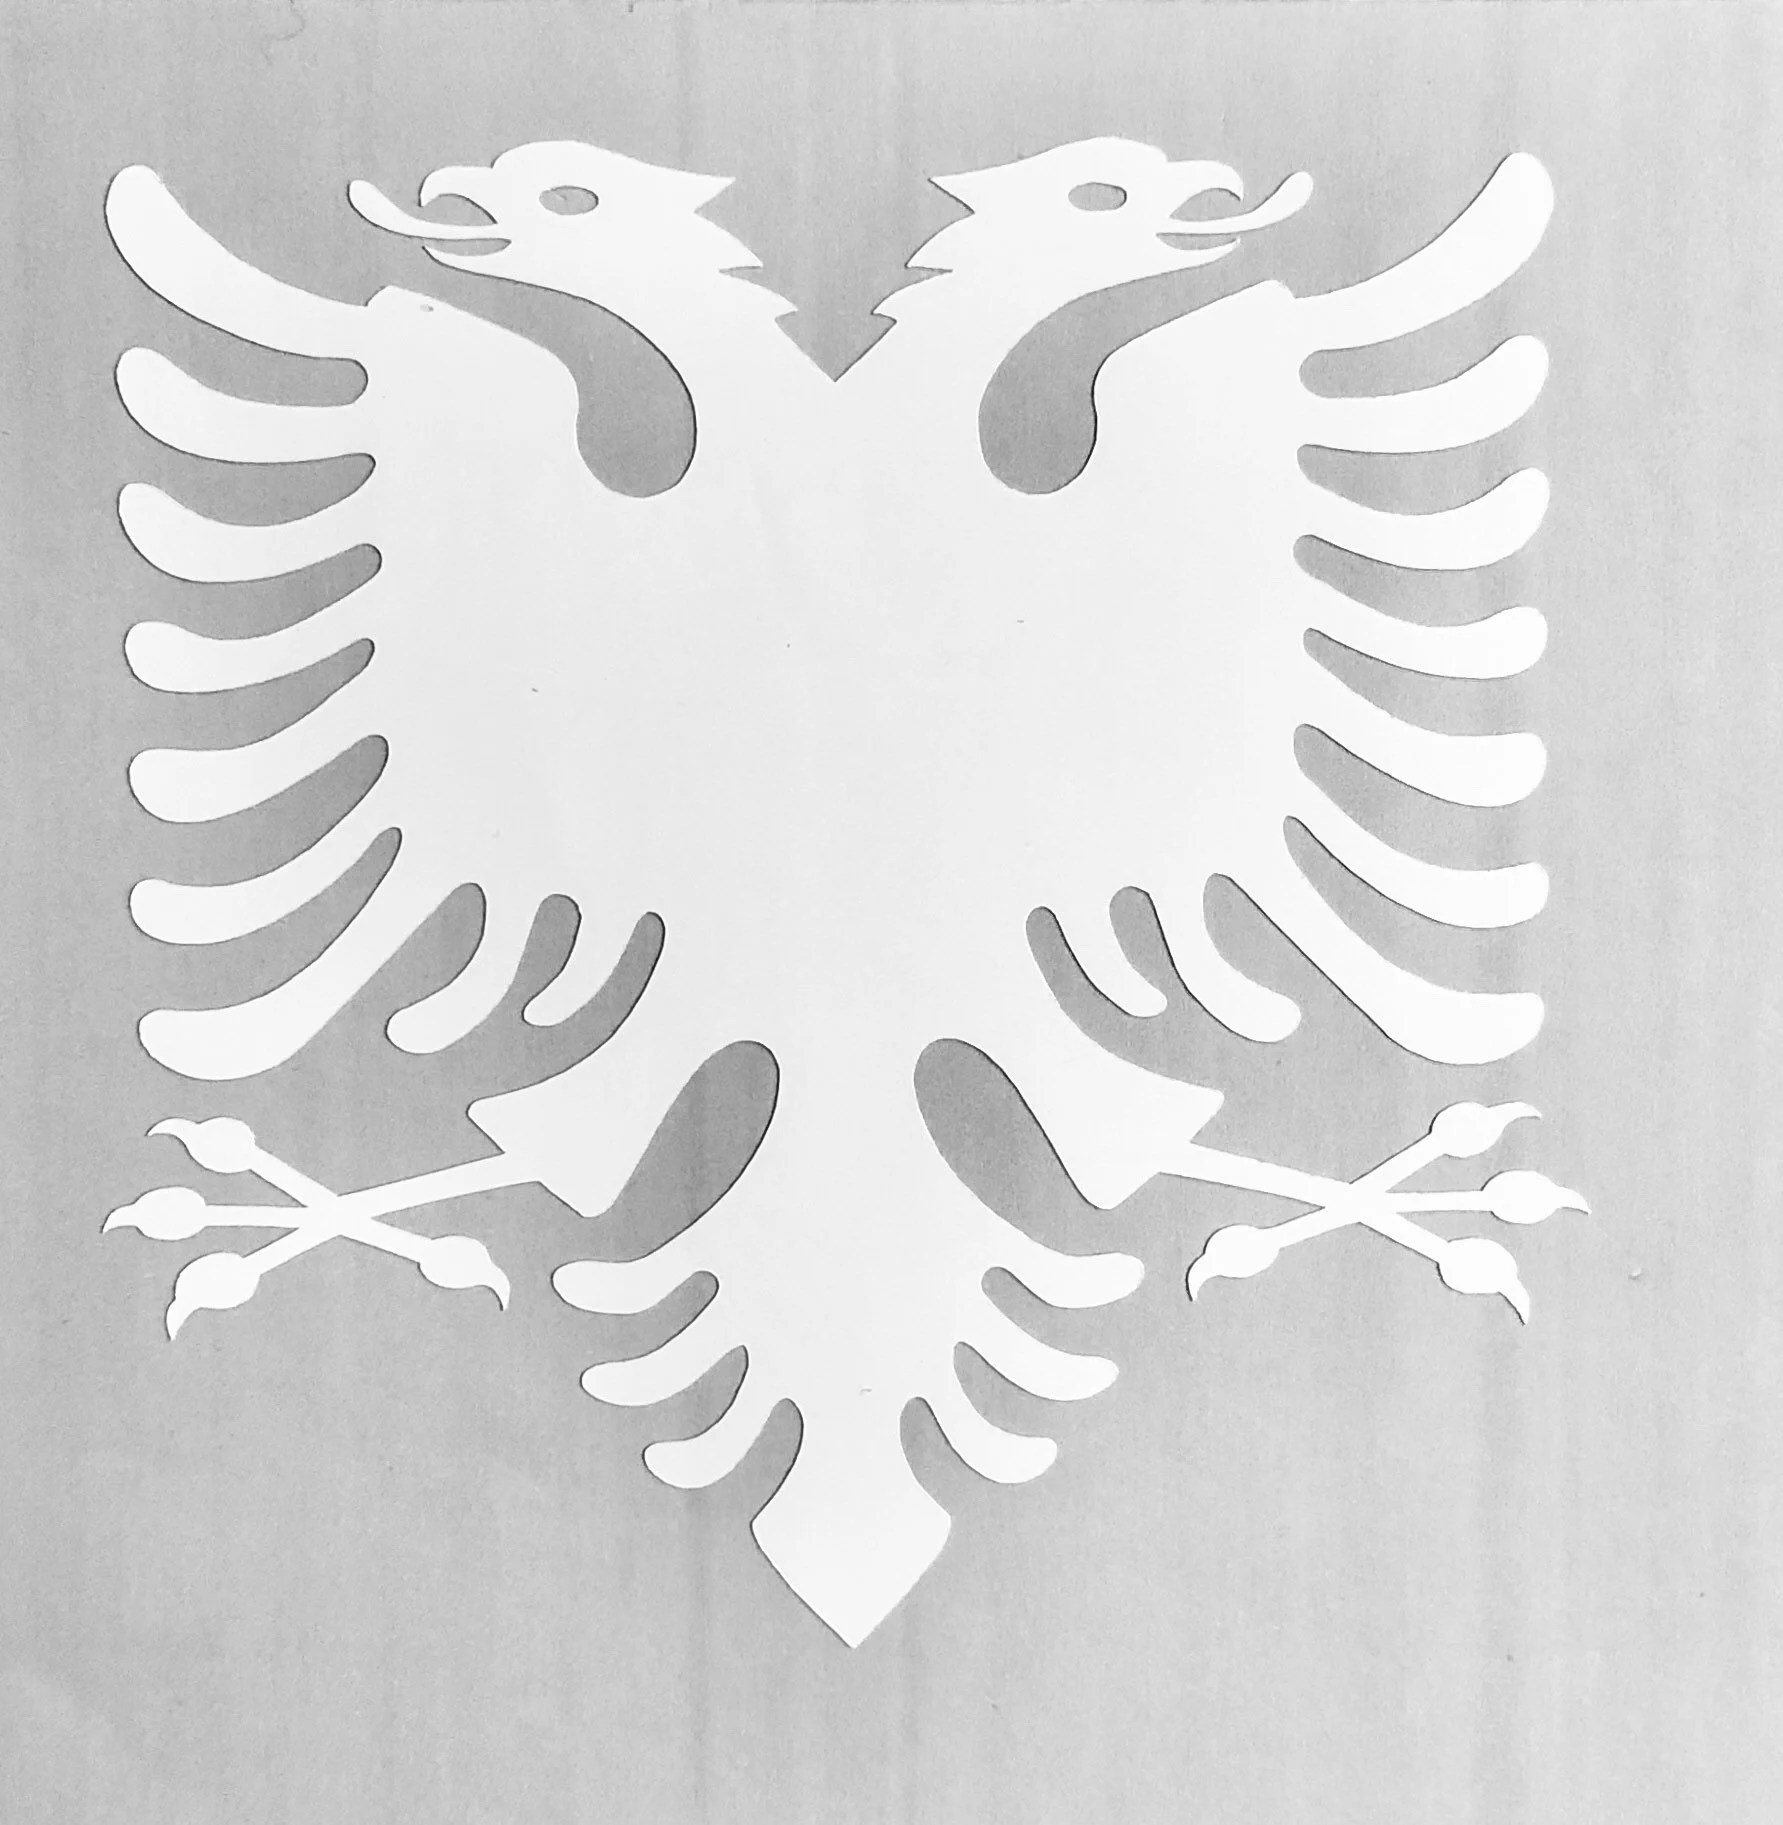 Albanian double-headed eagle made in white or black | Etsy